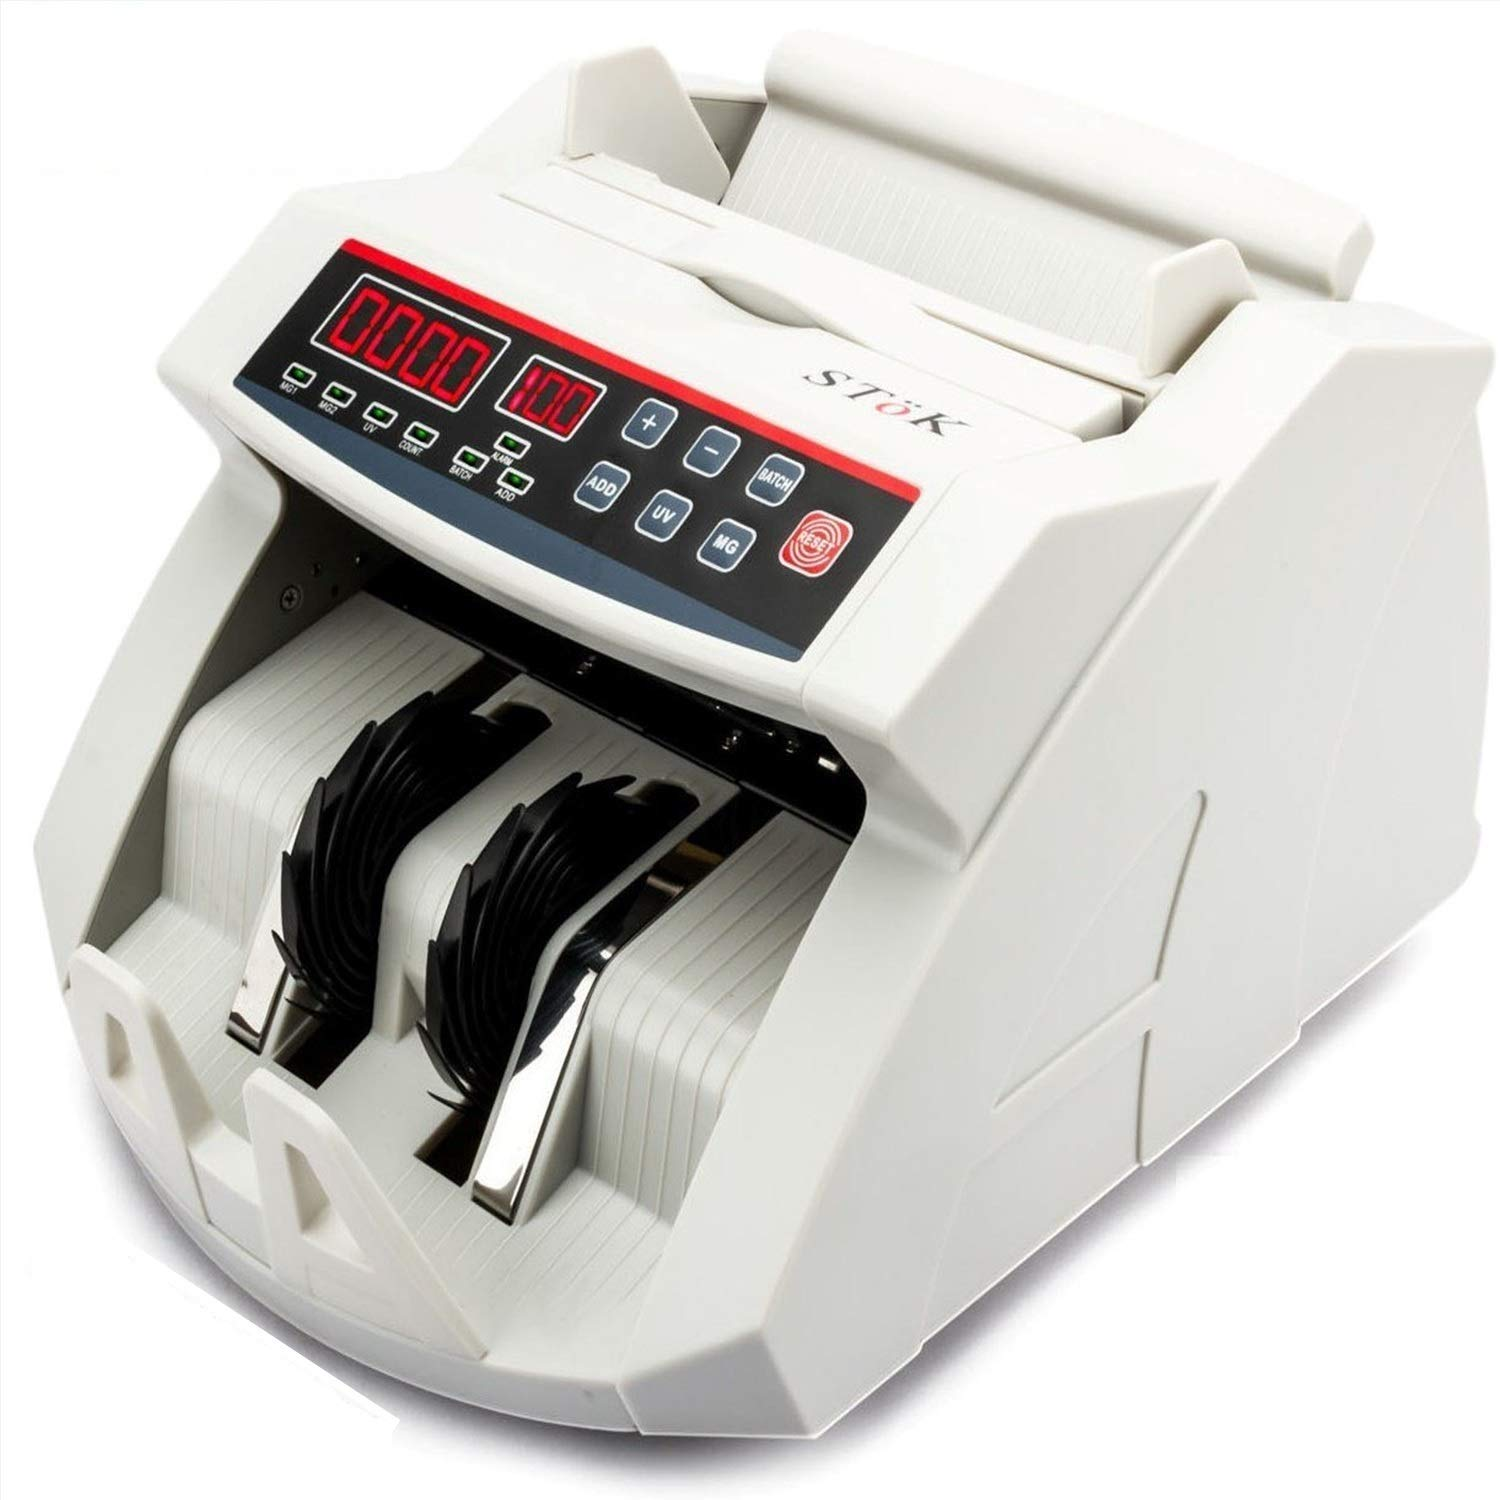 SToK (ST-MC01) Currency Counting Machine with UV/MG Counterfeit Notes